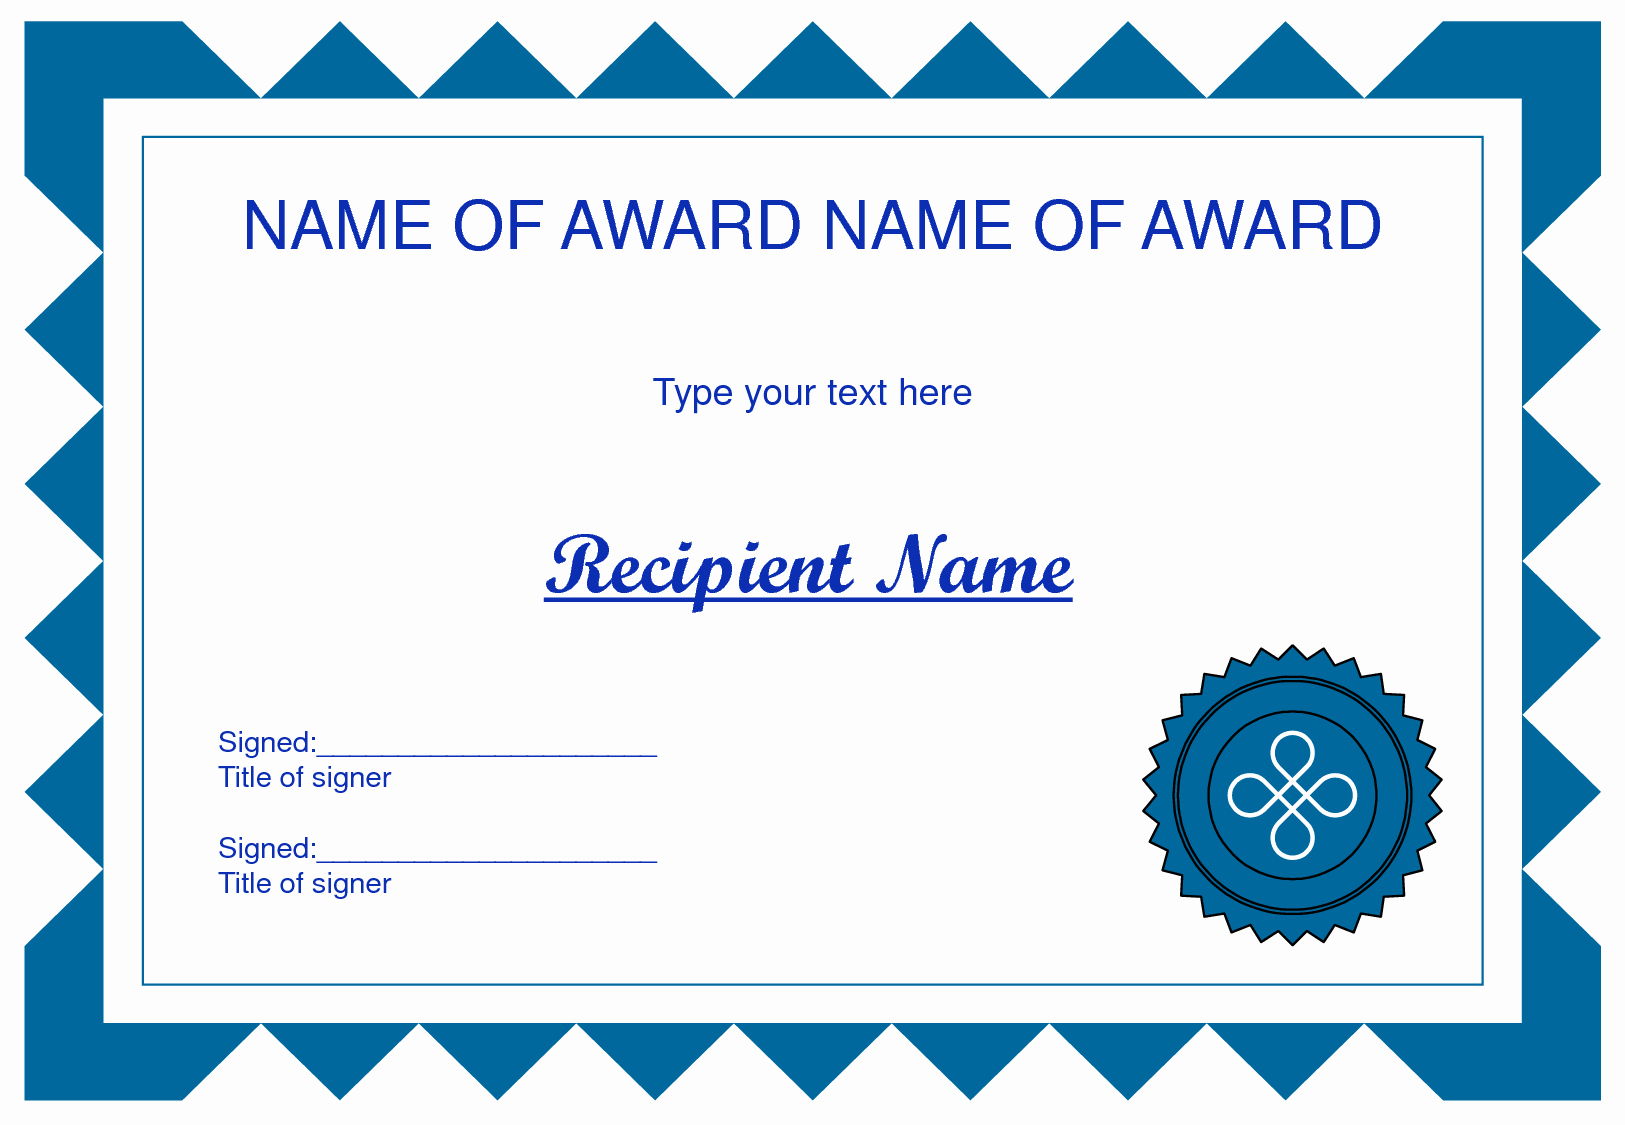 Award Certificate Template Powerpoint Beautiful Free Award Certificate Boarder Clipart Png and Cliparts